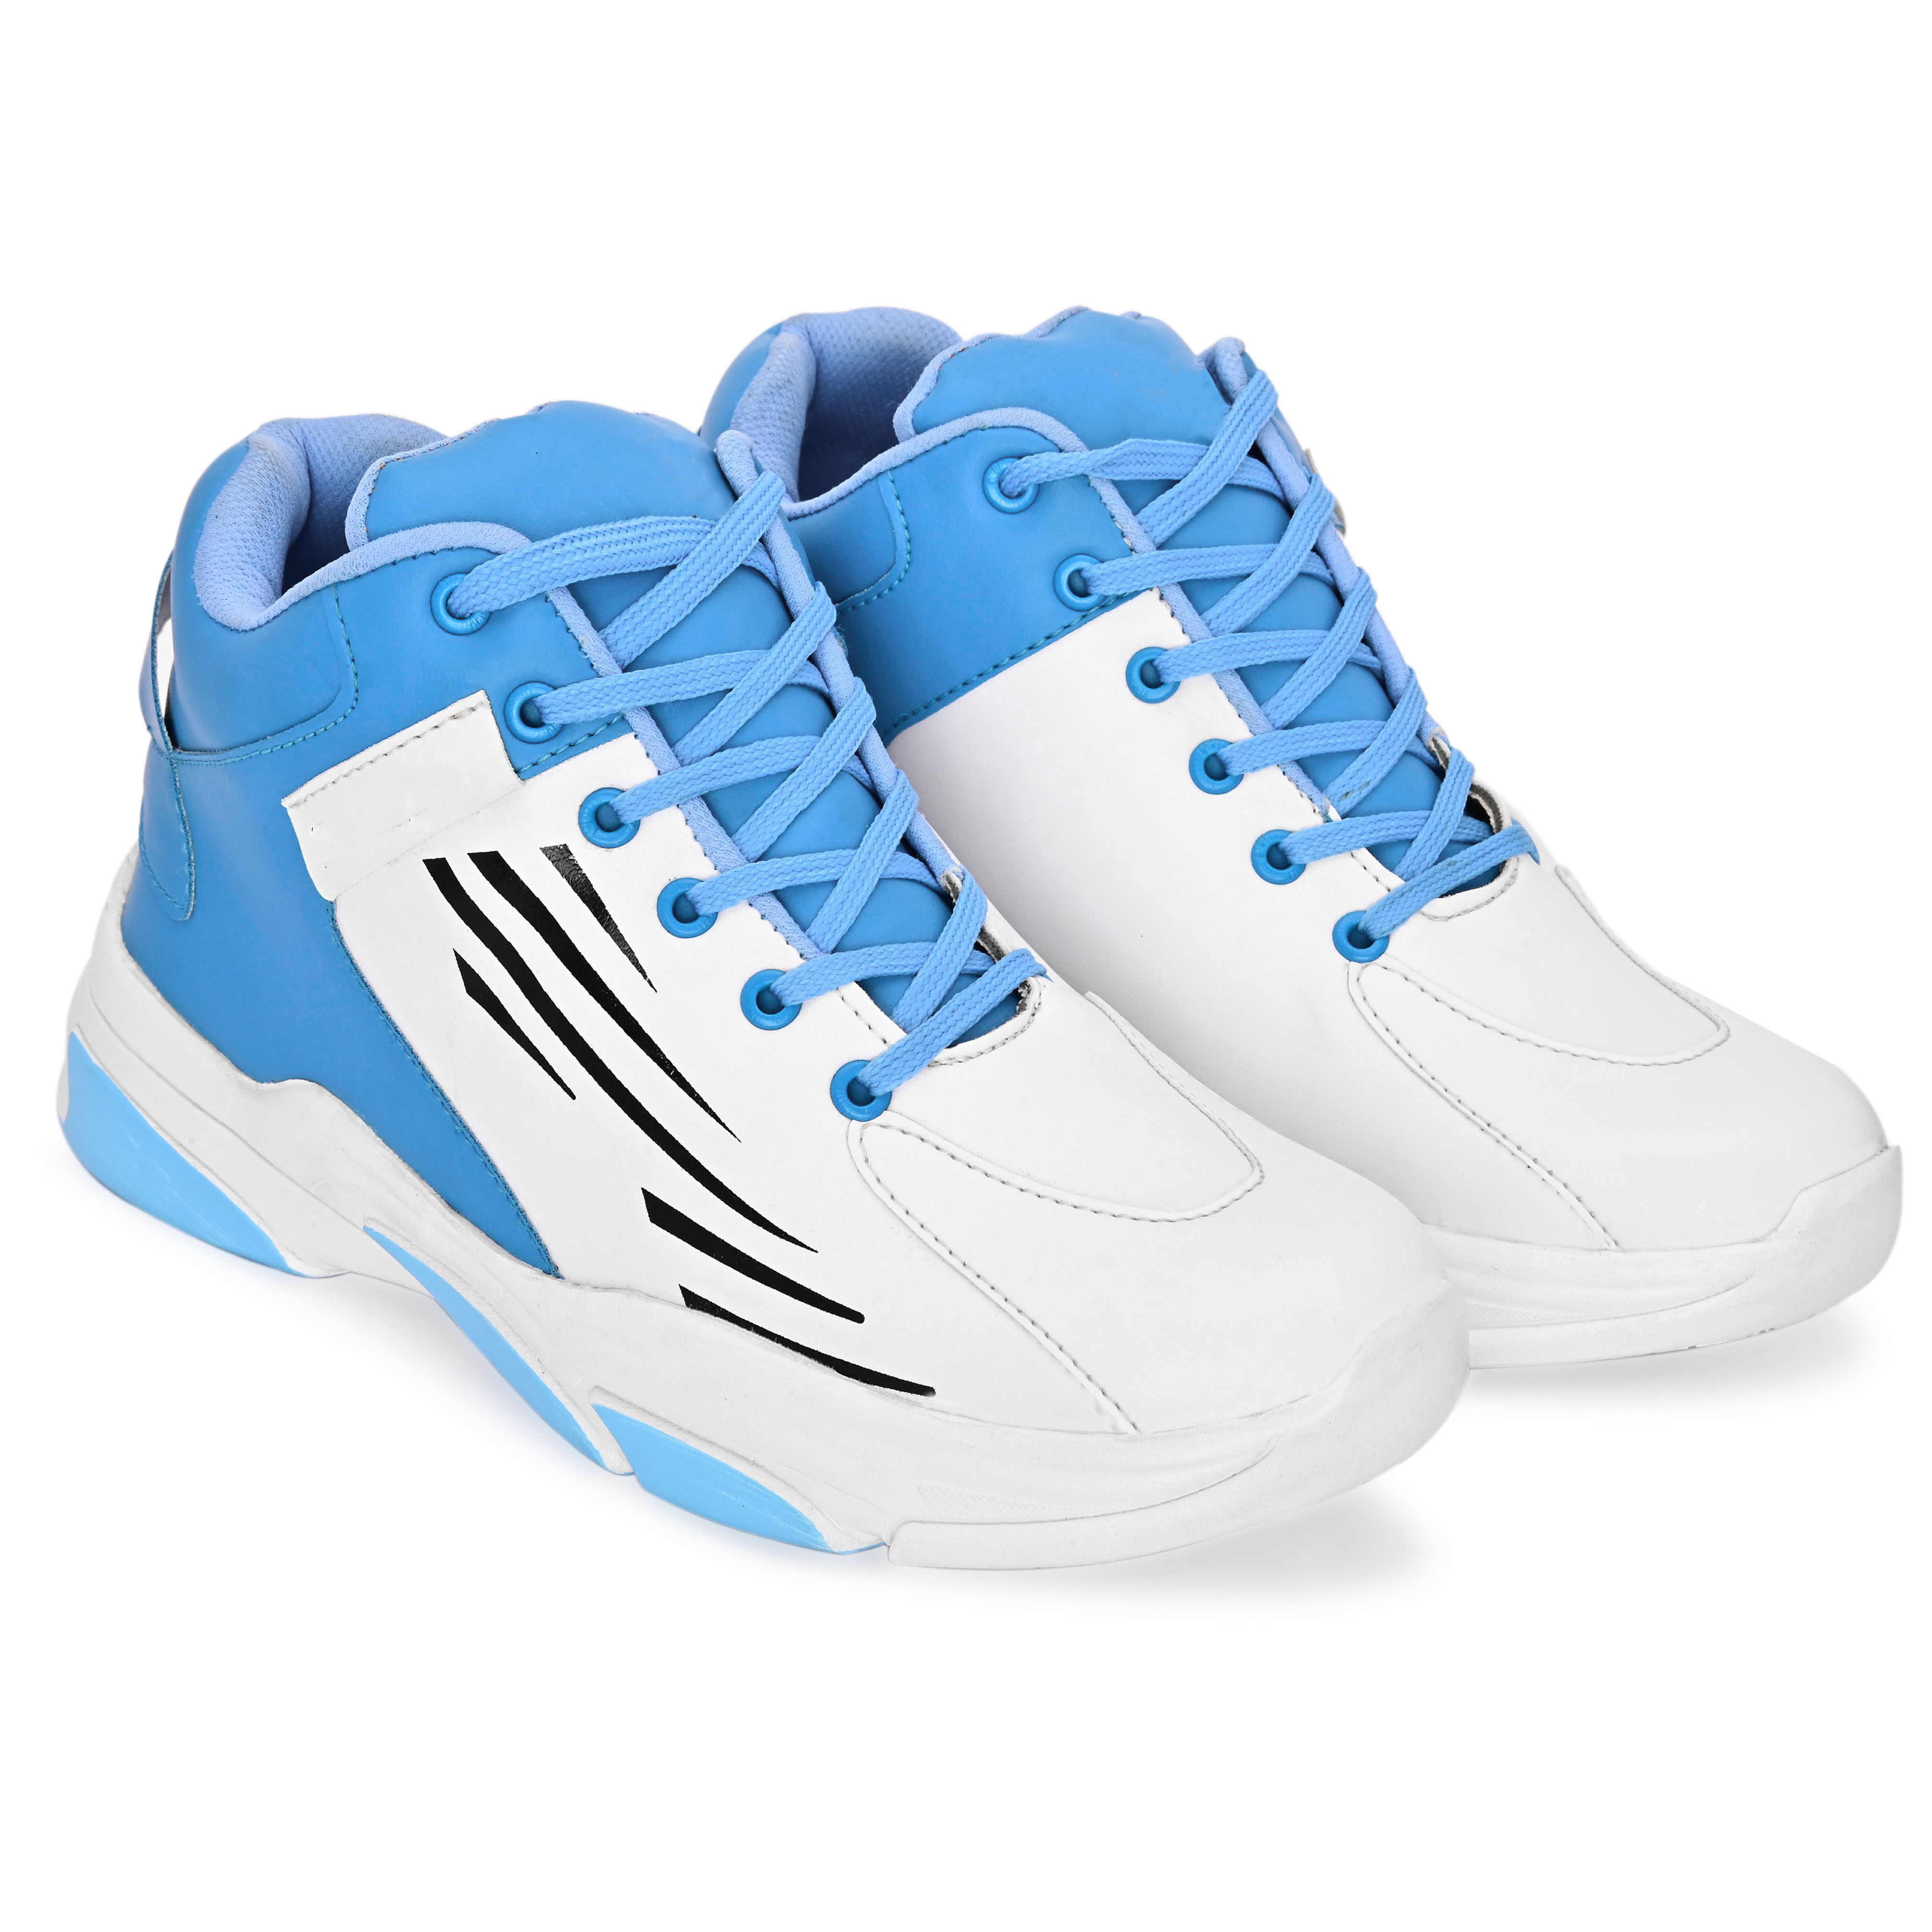 BRIFAR COMFORTABLE & TRENDY SPORTS SHOES ARE RELIABLE FOR ANY BFS0797BLU (6-9, BLUE, 4 PAIR)